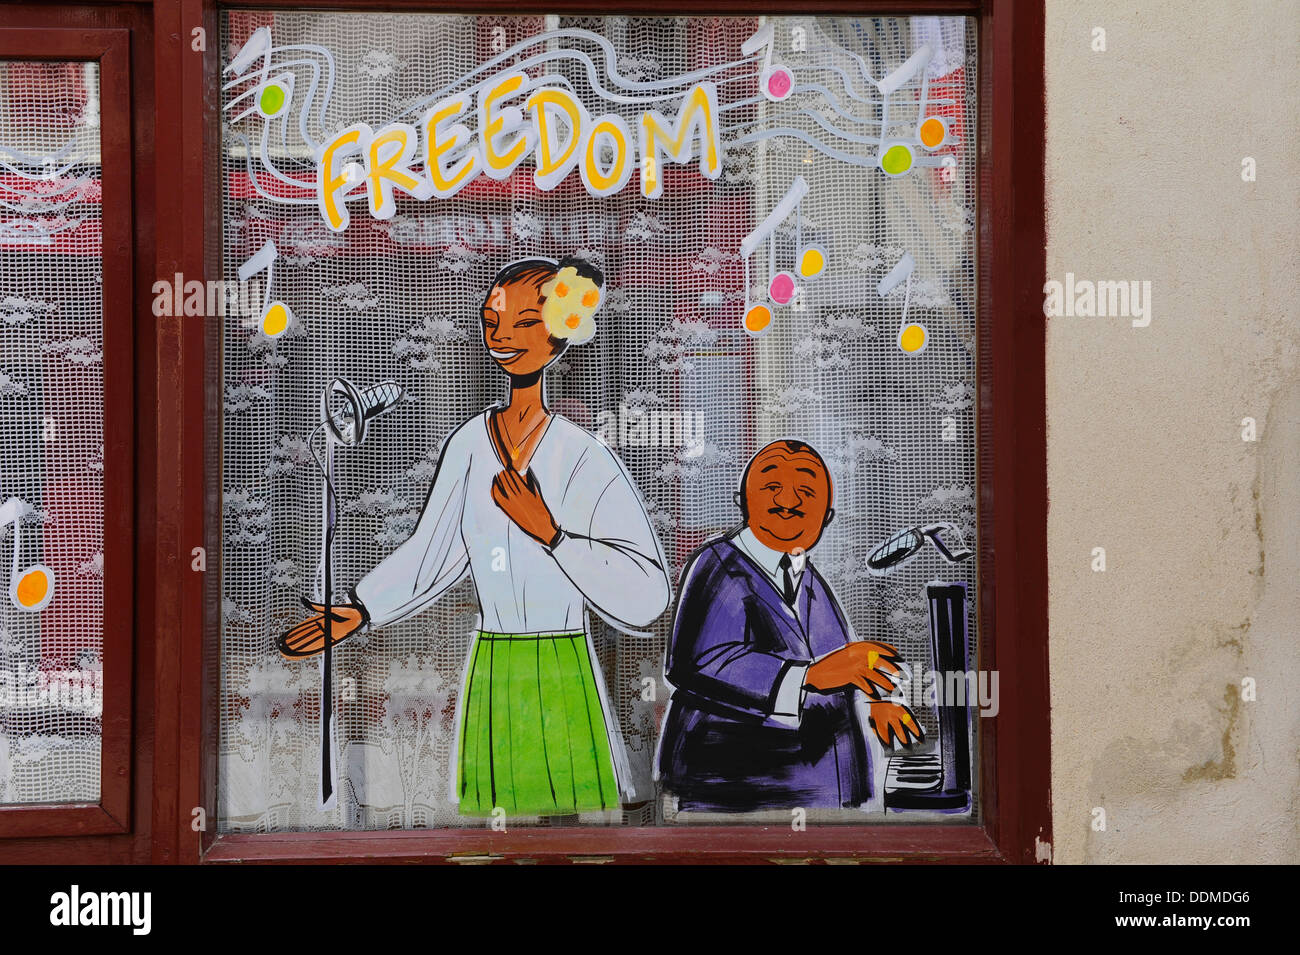 Painting onto a glass window of a female singer and male piano player with freedom being the message. - Stock Image